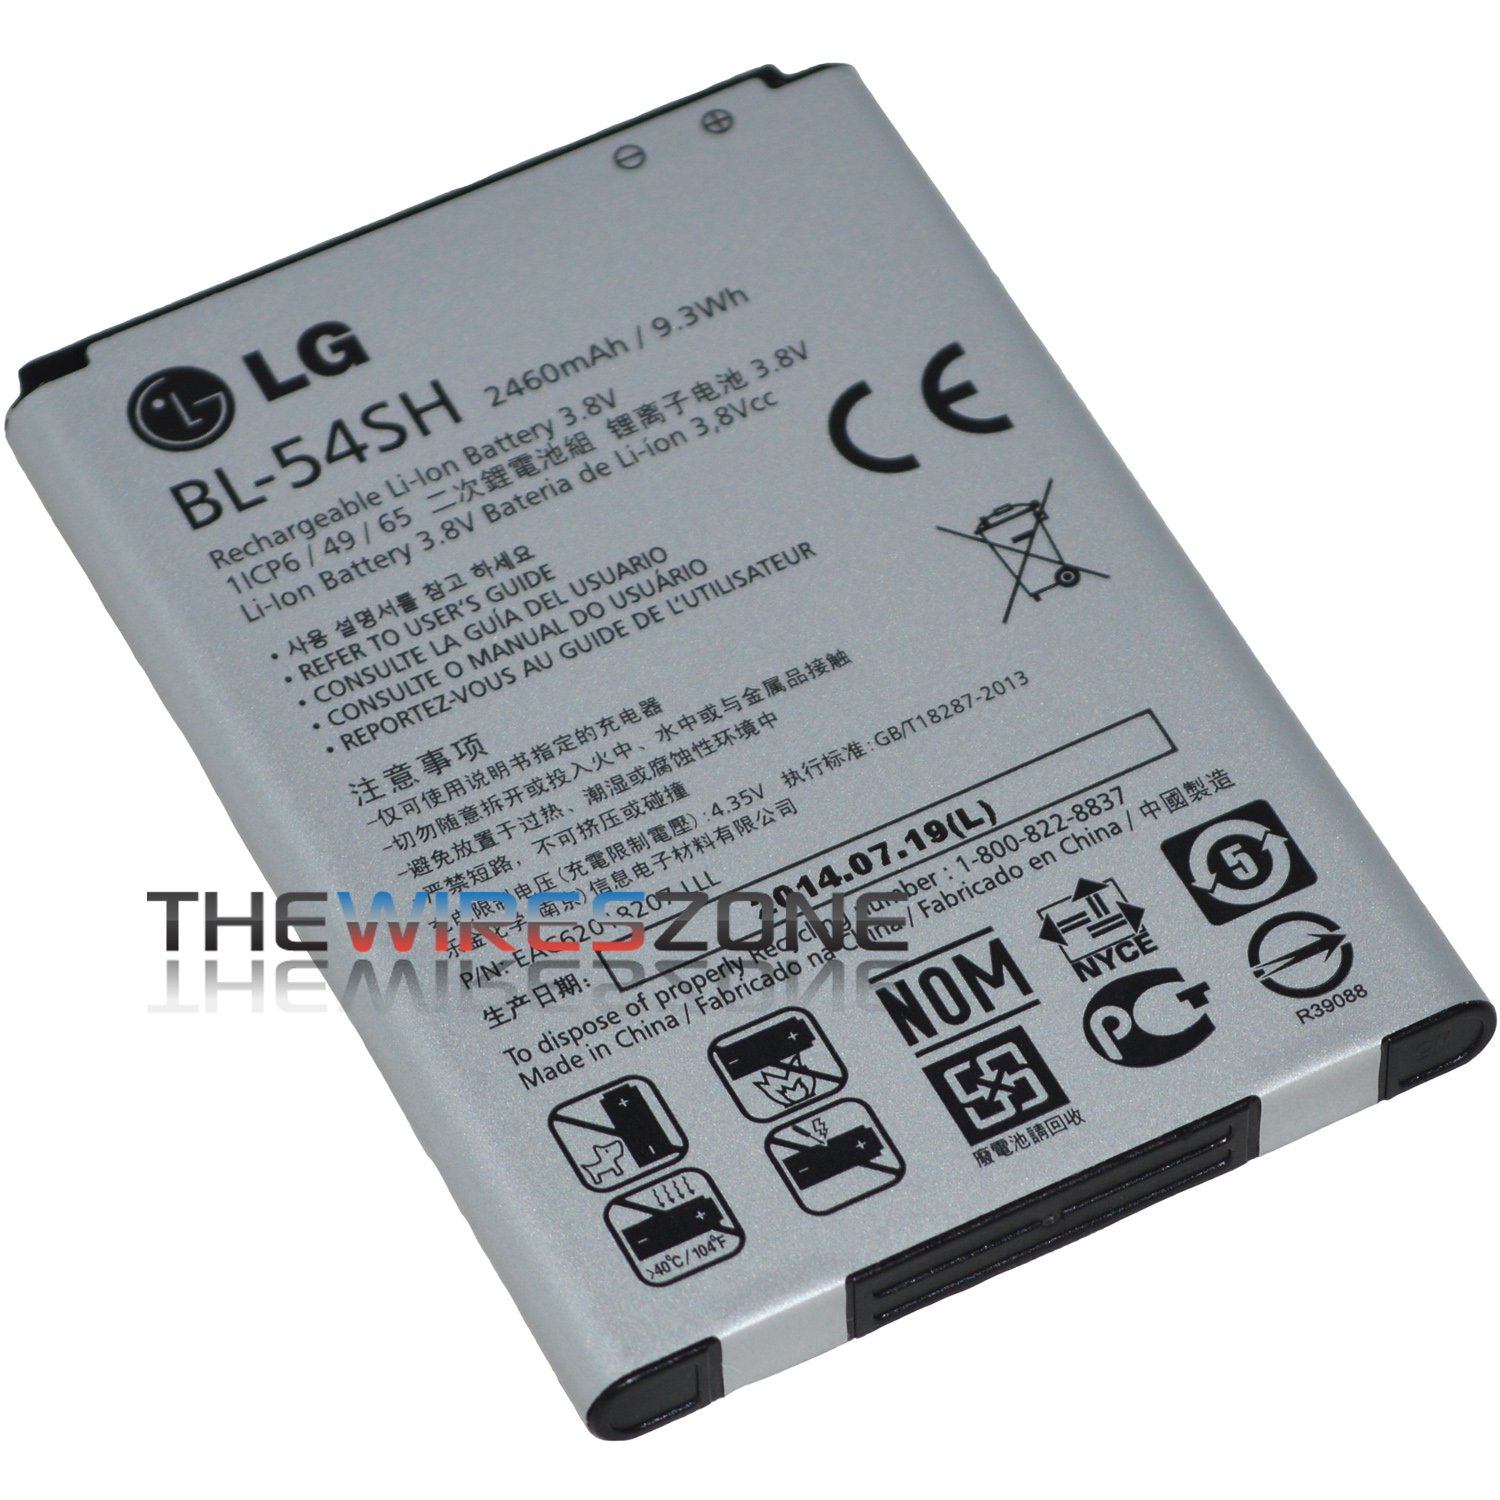 Genuine Oem Original Lg Bl 54sh 2460mah Battery For Computer Parts Related Keywords Suggestions Long Optimus P698 F7 Us870 Non Retail Packaging Grey Cell Phones Accessories